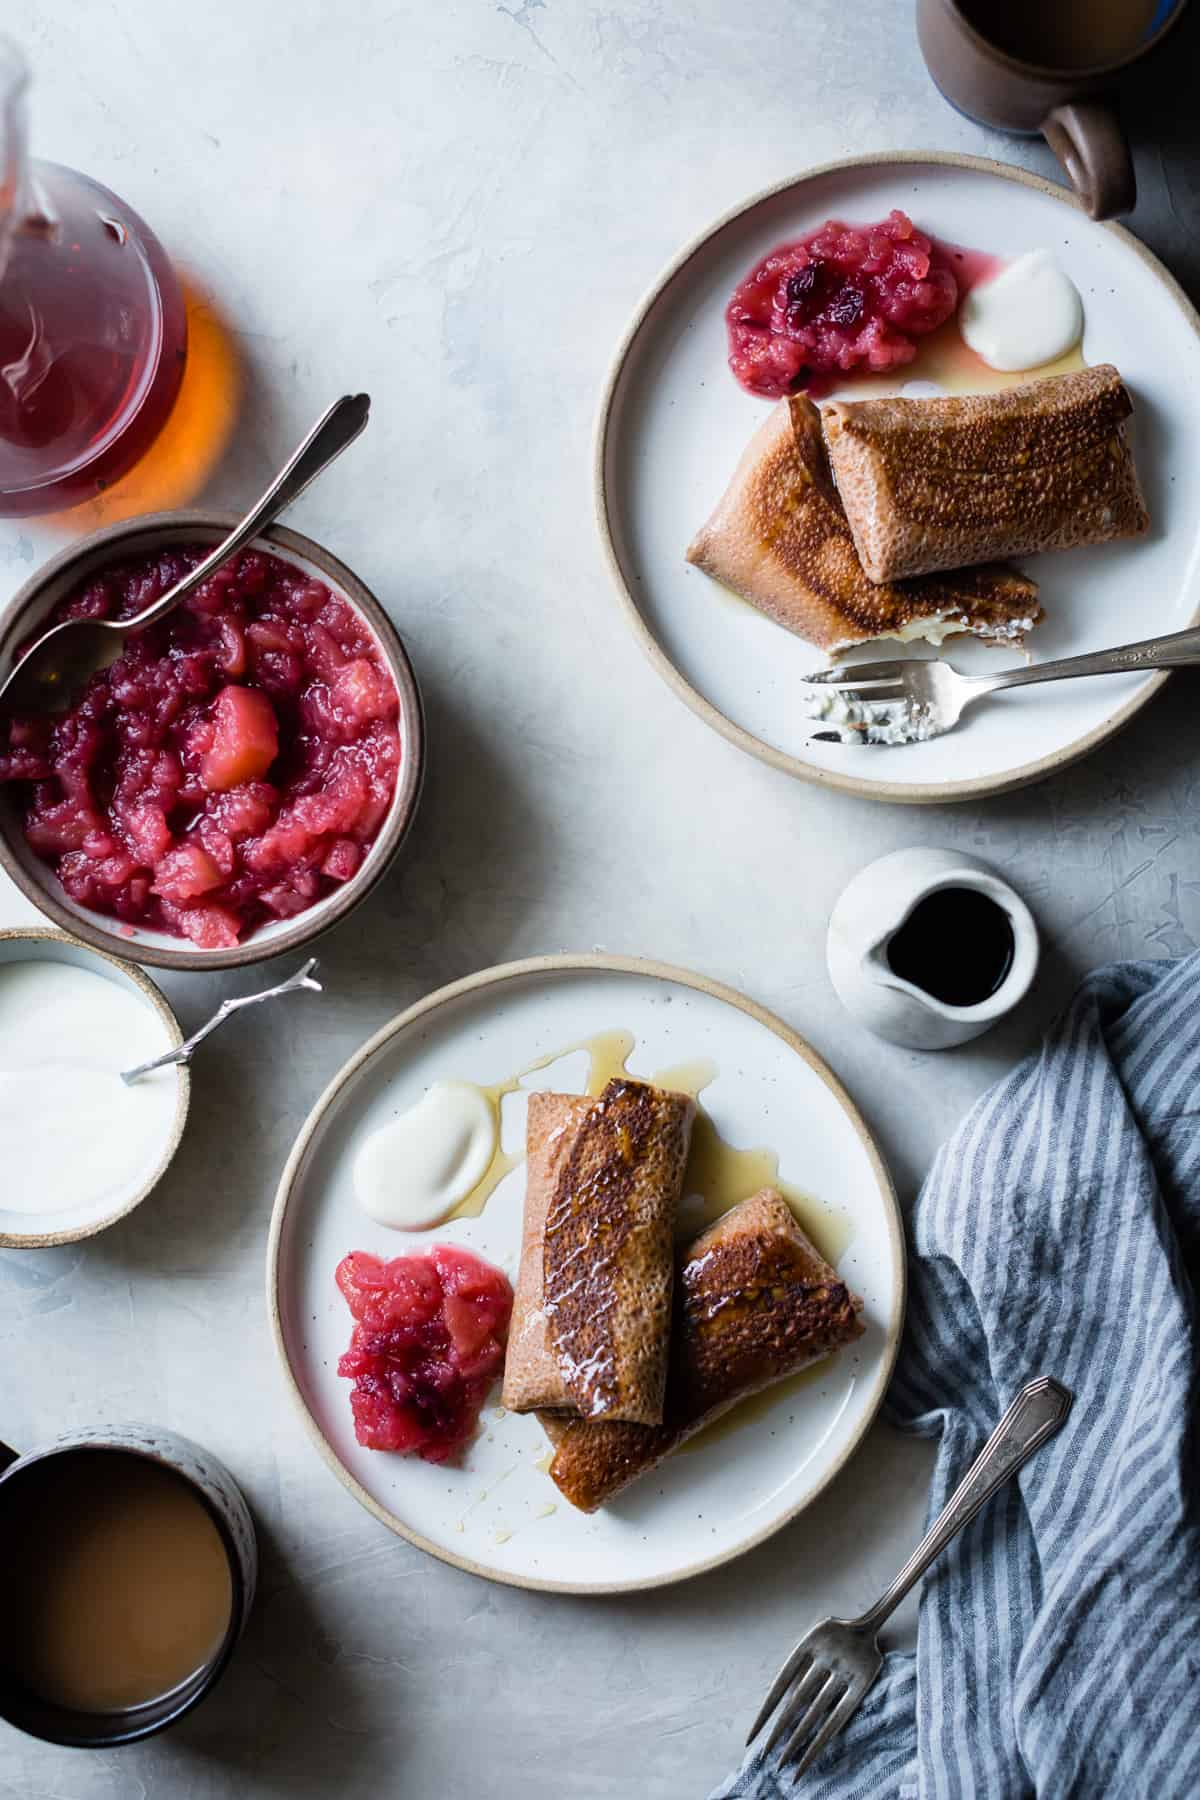 Chestnut Cheese Blintzes with Cranberry Applesauce {gluten-free}